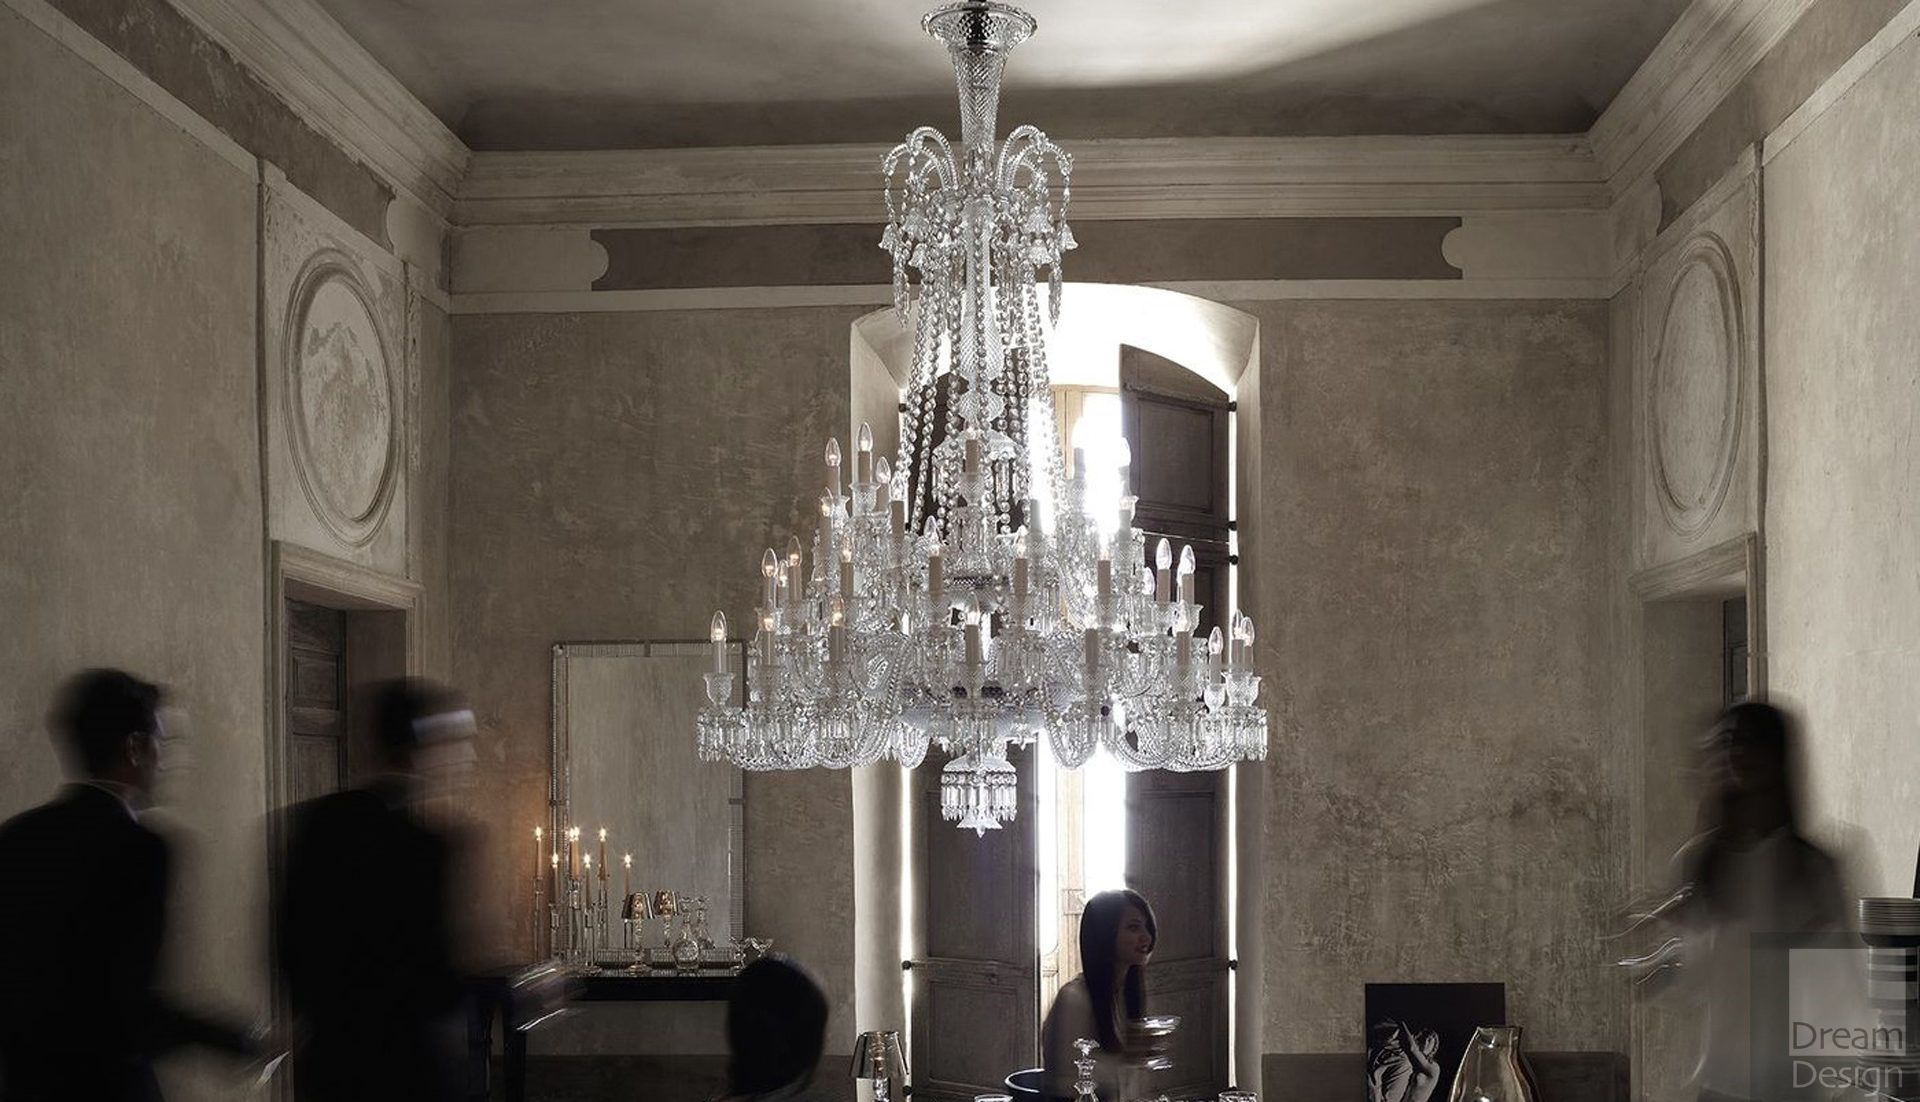 Baccarat Zenith Chandelier (48 Lights)